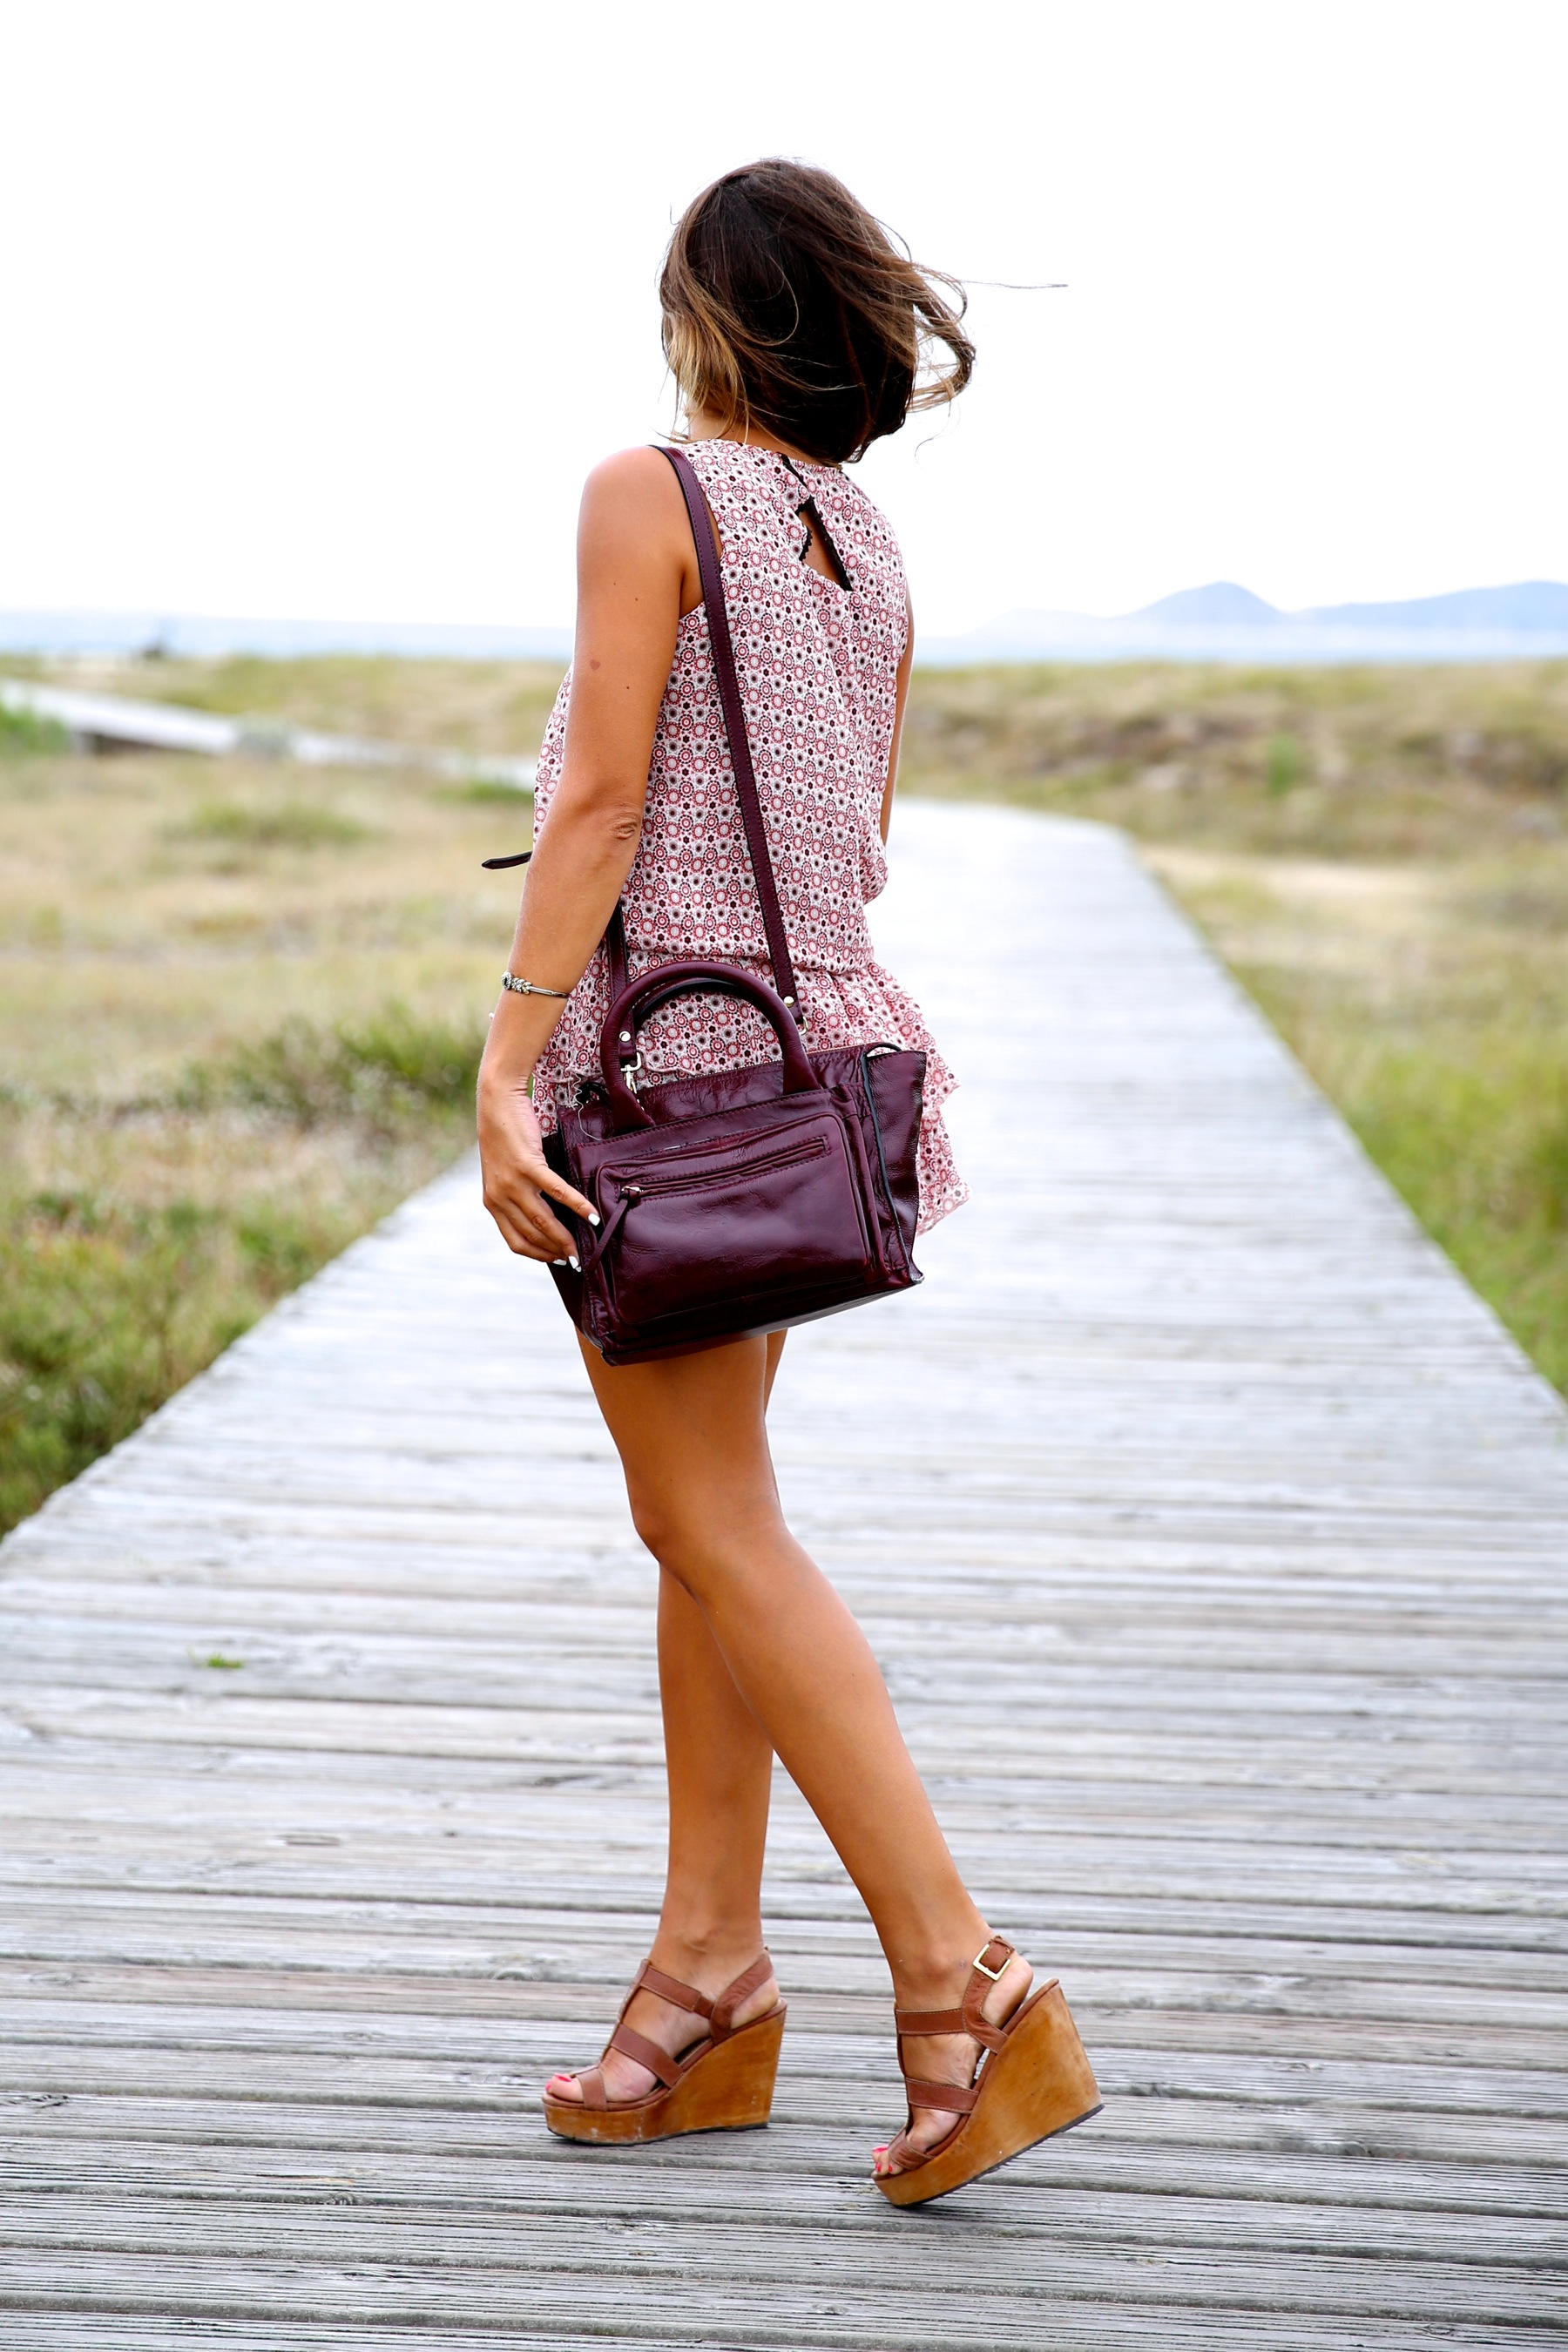 trendy_taste-look-outfit-street_style-ootd-blog-blogger-fashion_spain-moda_españa-boho-beach-playa-galicia-vestido-dress-sandalias-sandals-12